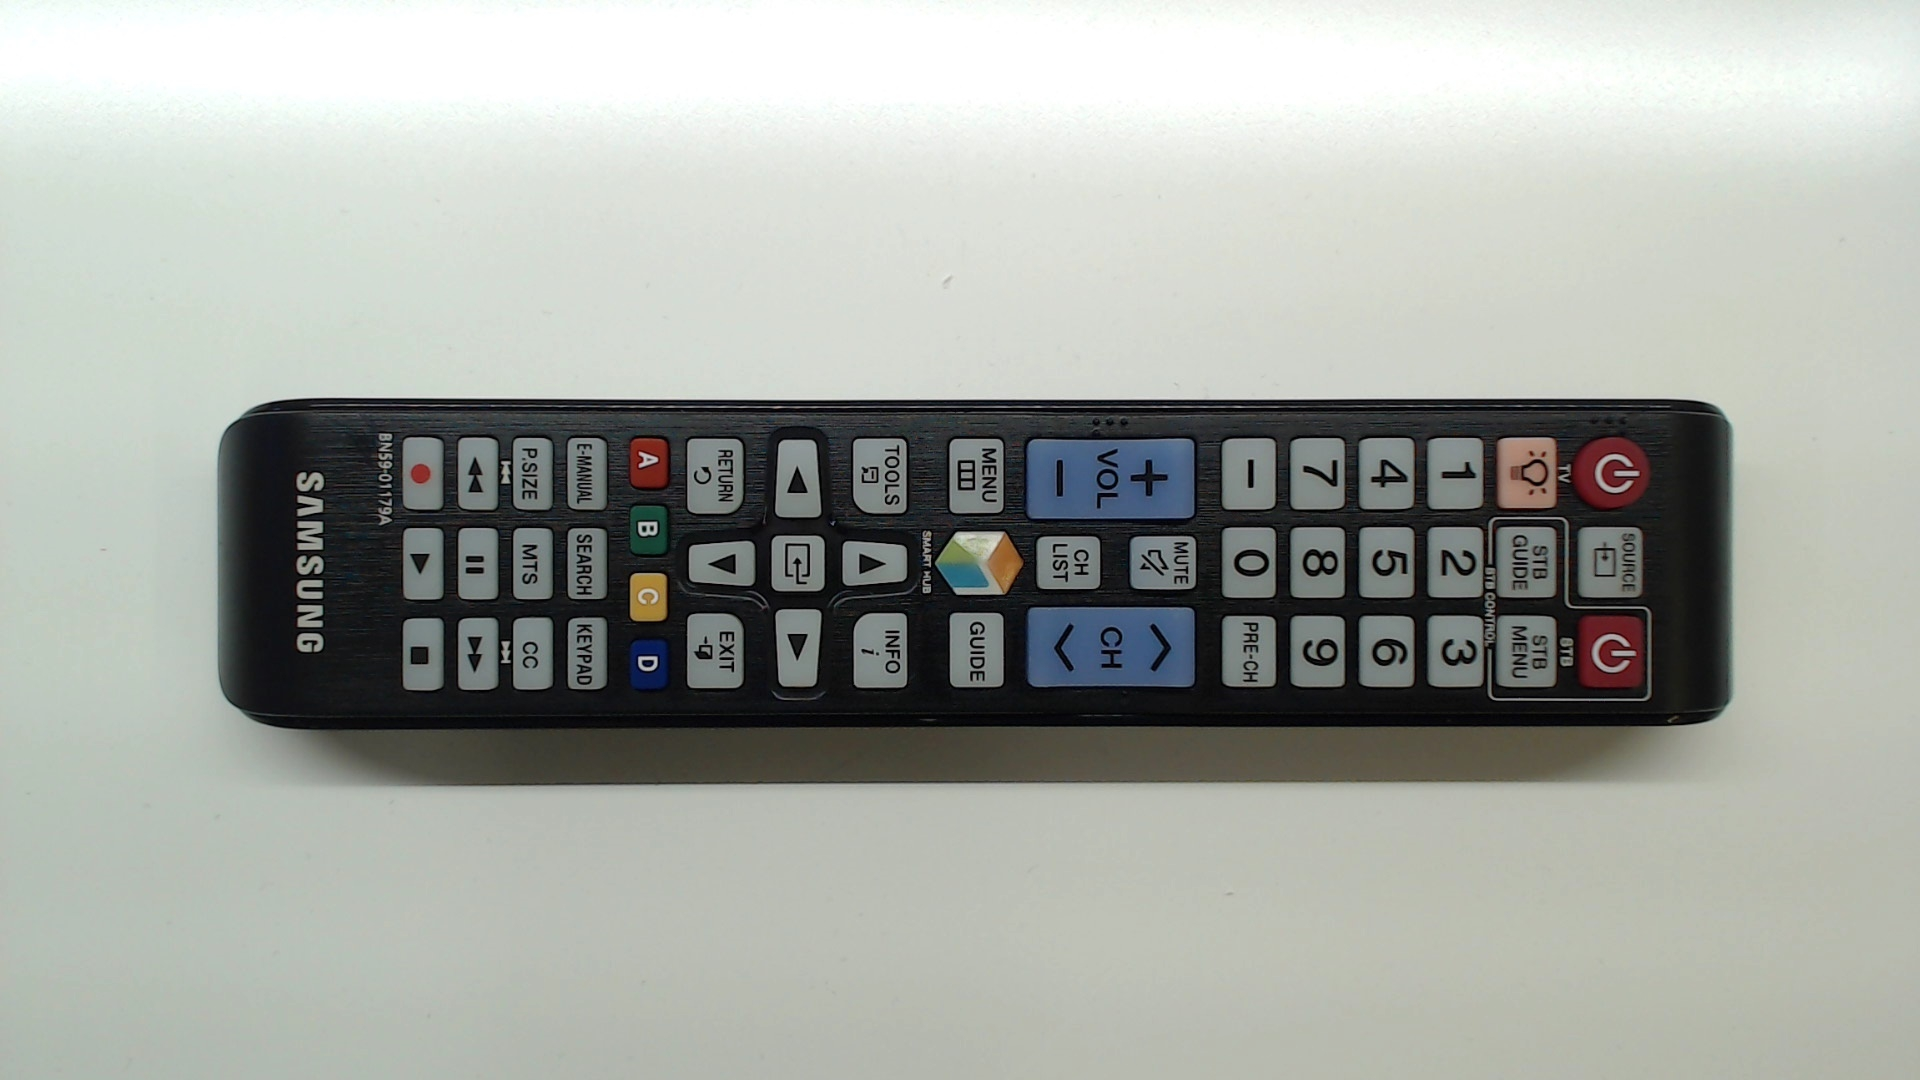 Samsung Remote Control Bn59 01179a Tvtechparts